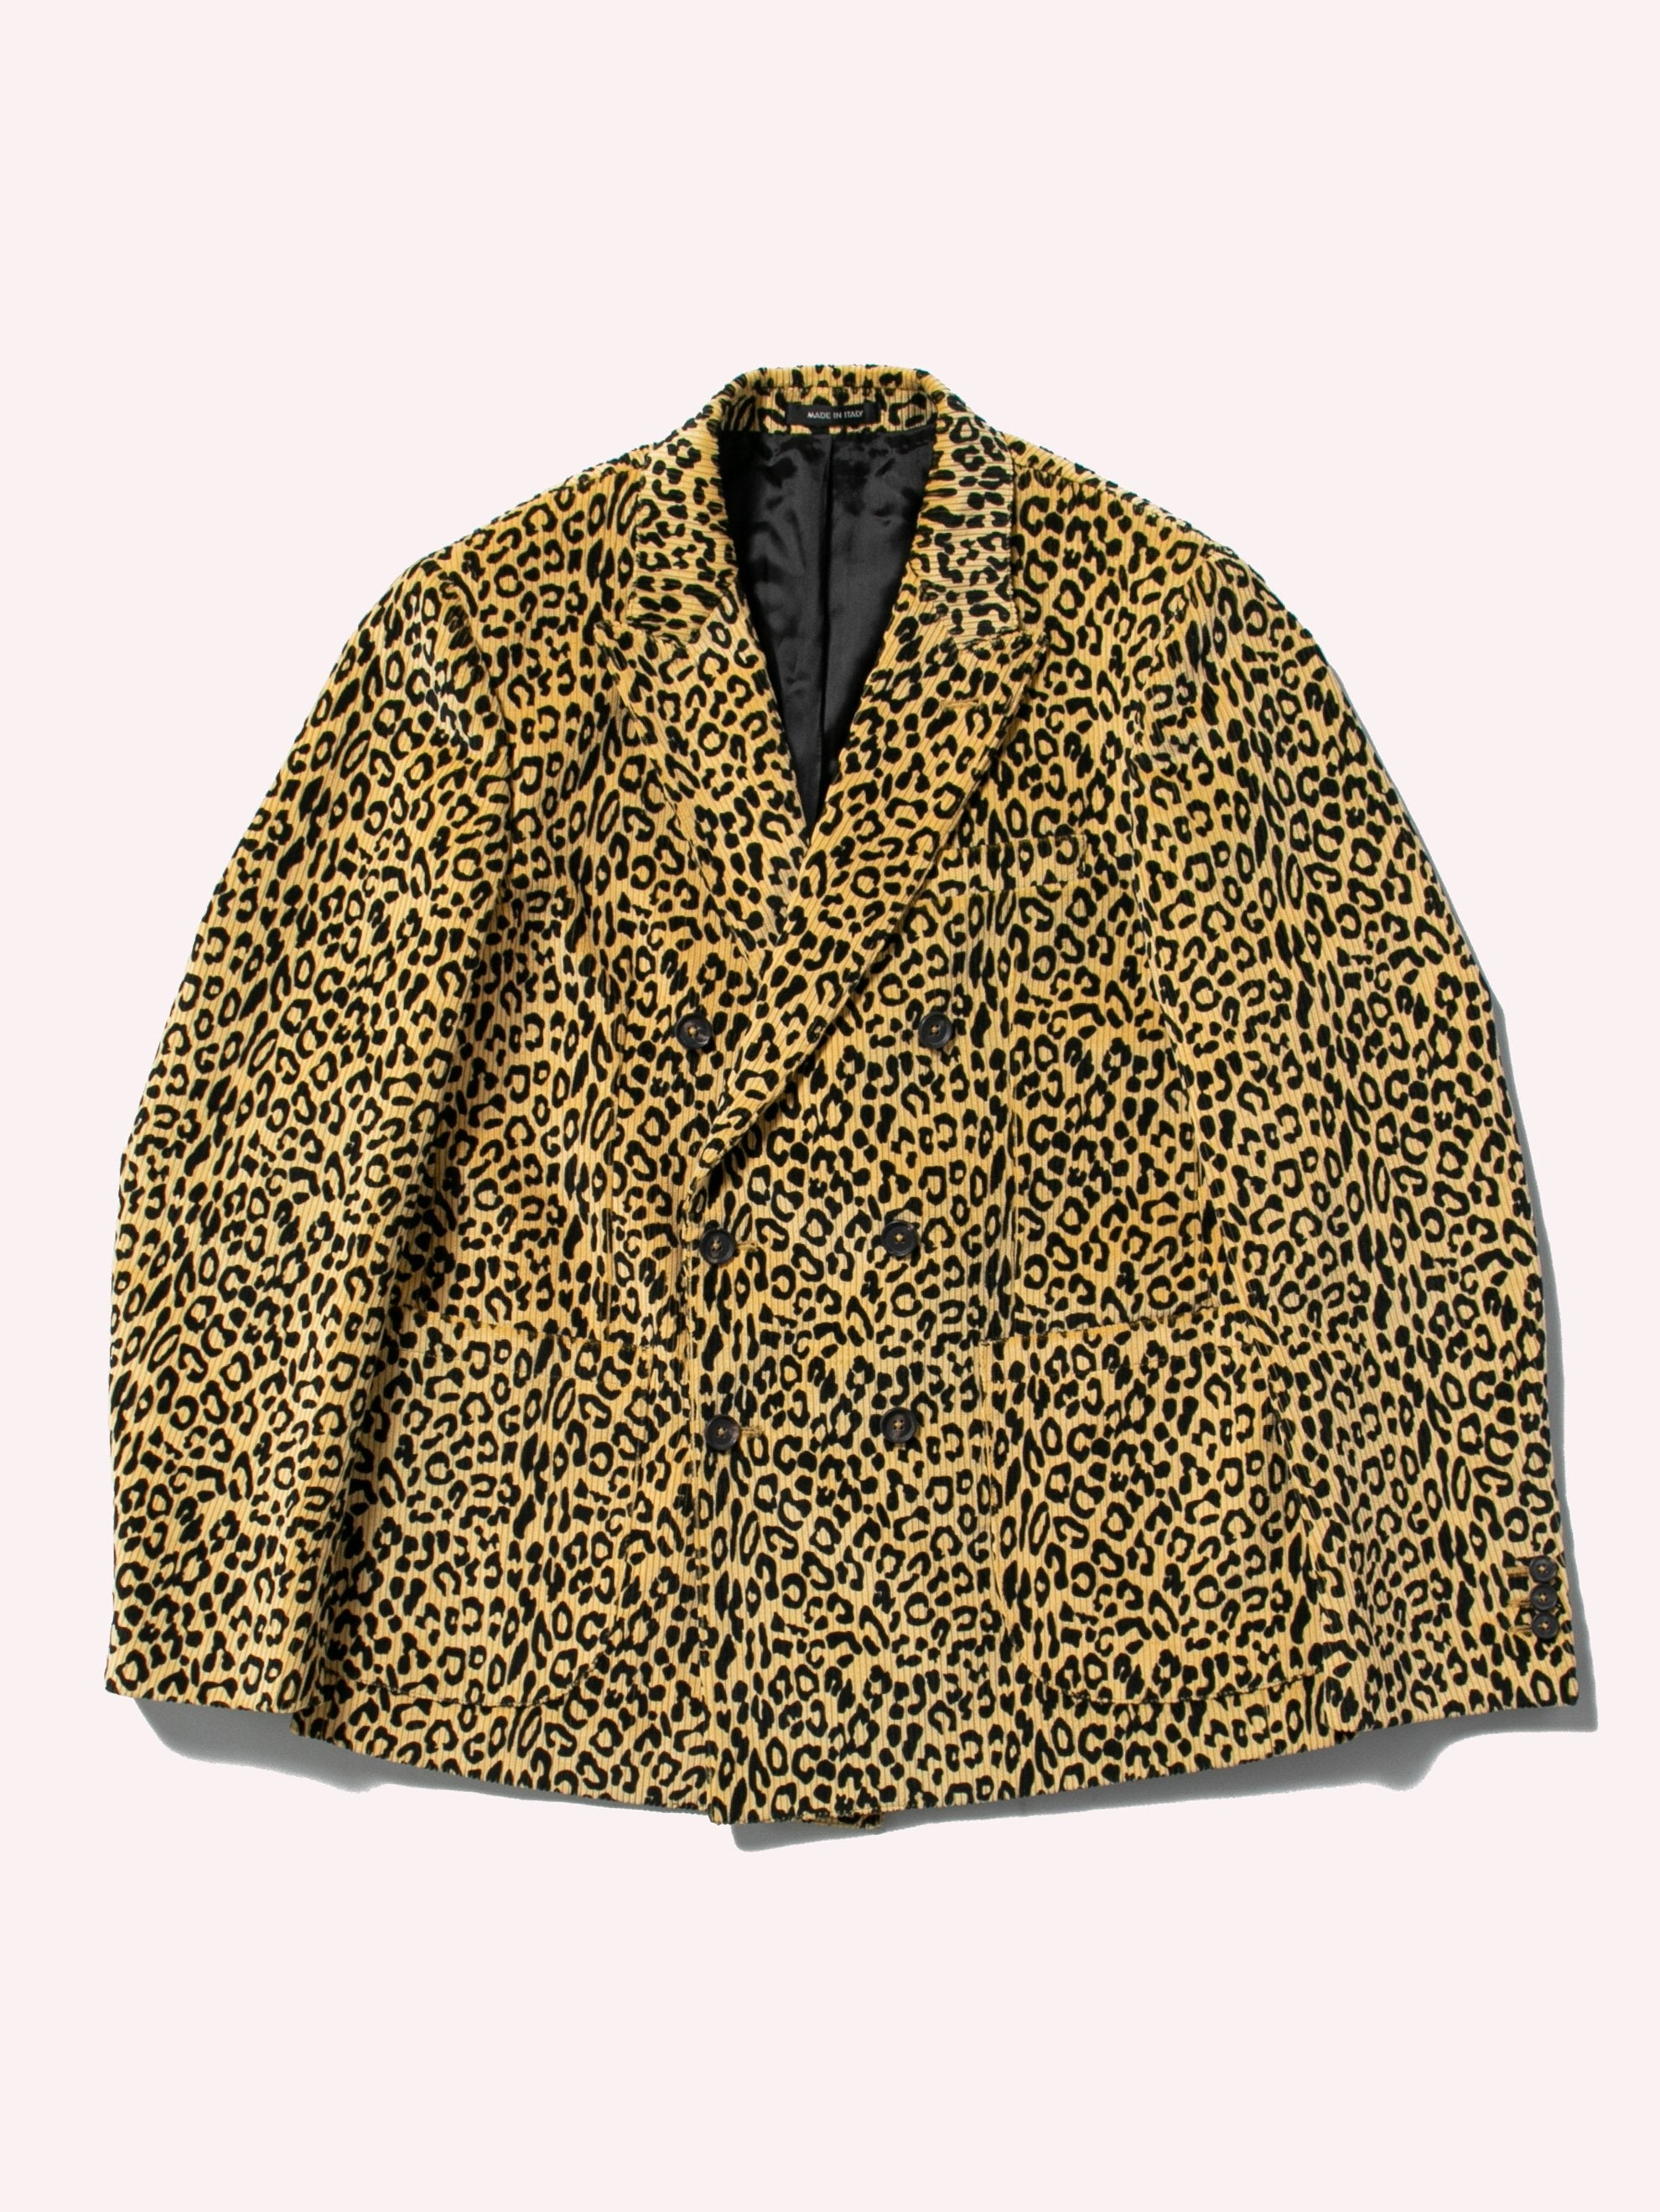 Leopard Leopard Corduroy Double Breasted Sport Coat 1